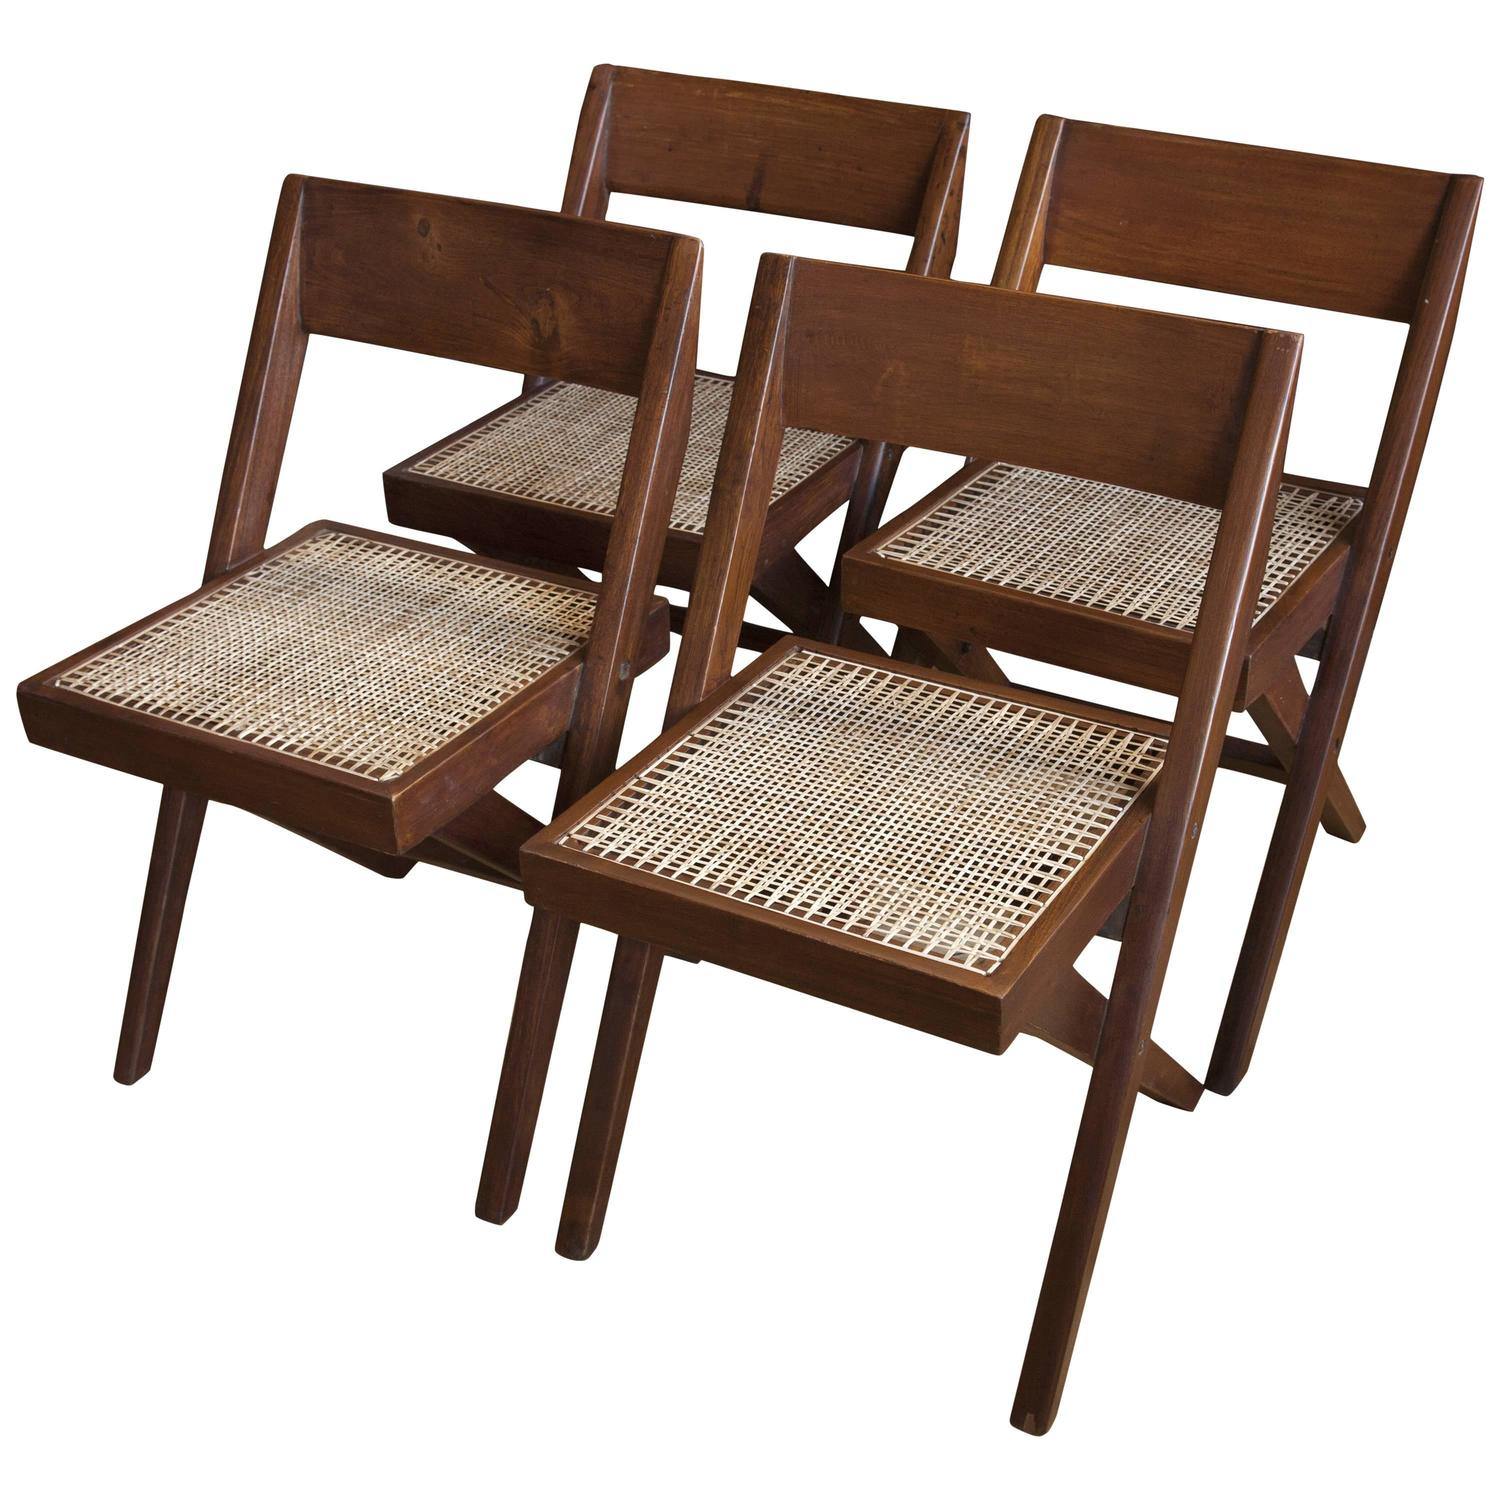 Set of four library chairs from chandigarh by pierre